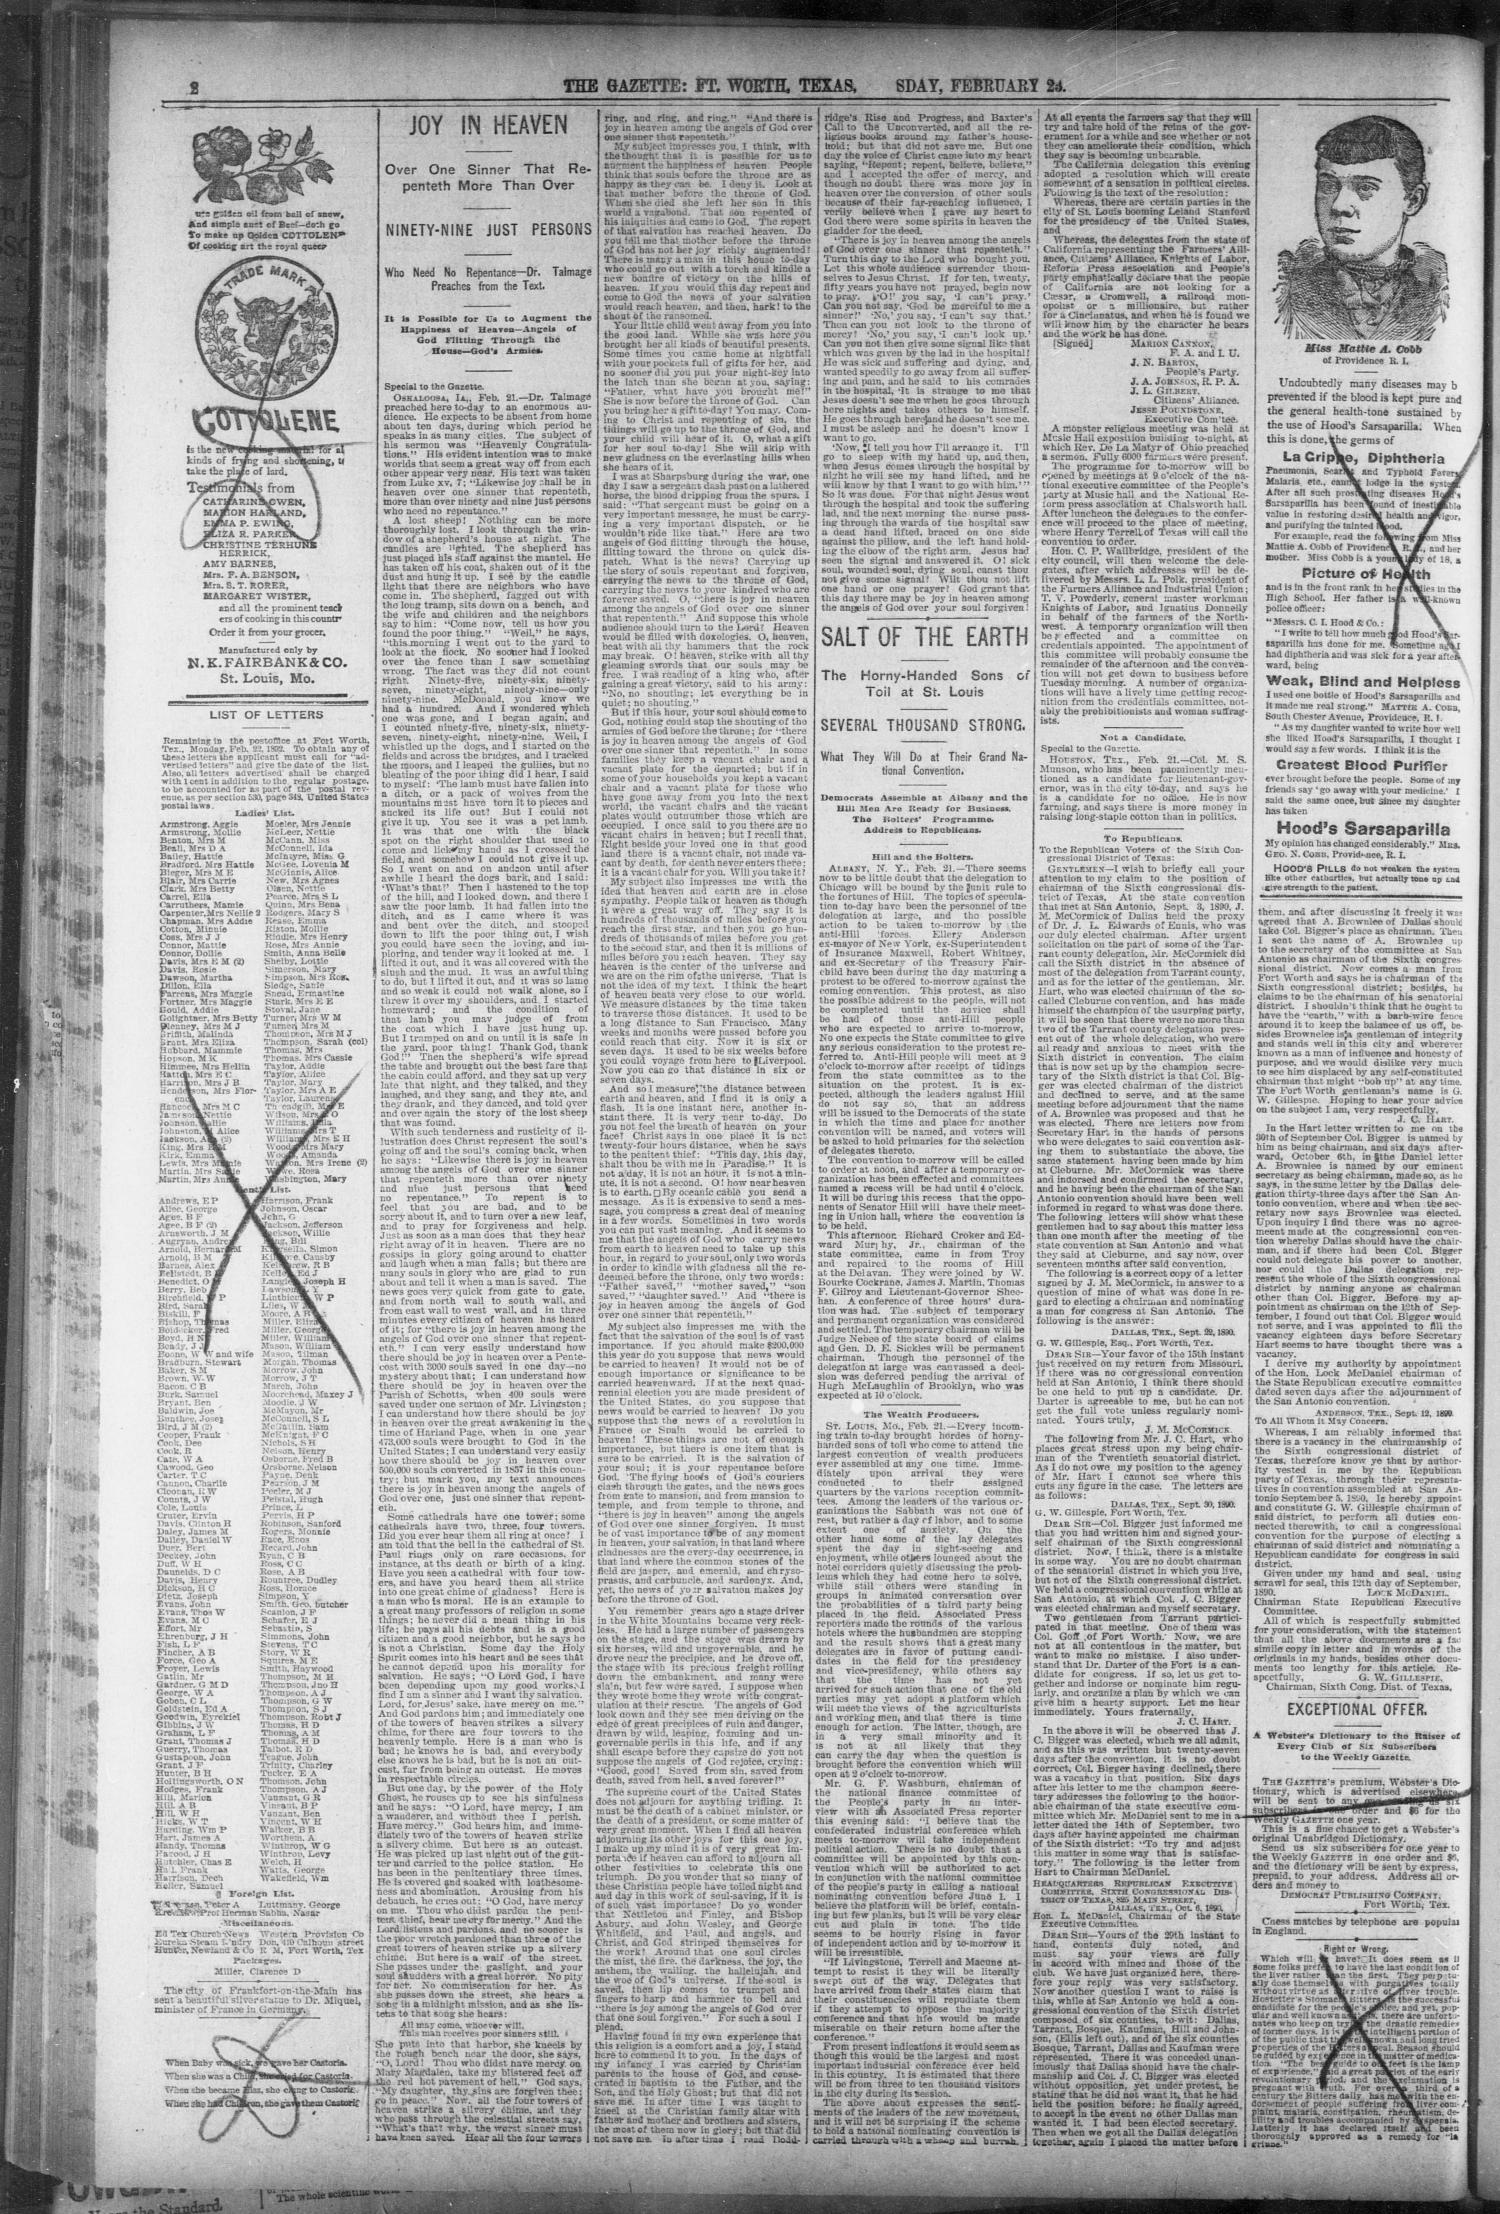 Fort Worth Gazette. (Fort Worth, Tex.), Vol. 14, No. 12, Ed. 1, Thursday, February 25, 1892                                                                                                      [Sequence #]: 2 of 16